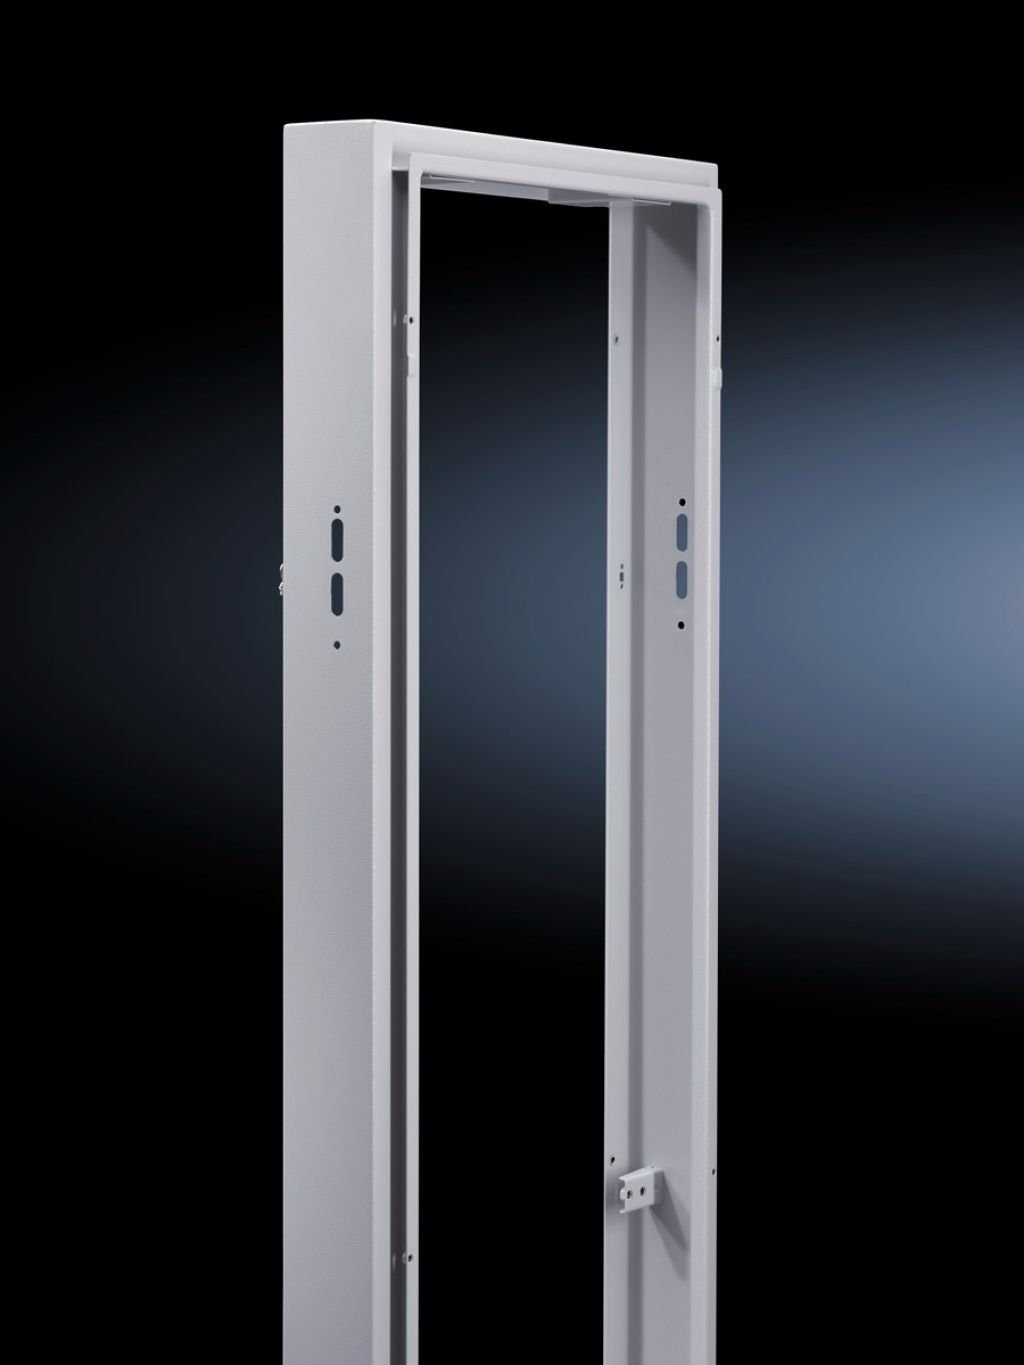 TS isolator door cover (US version)